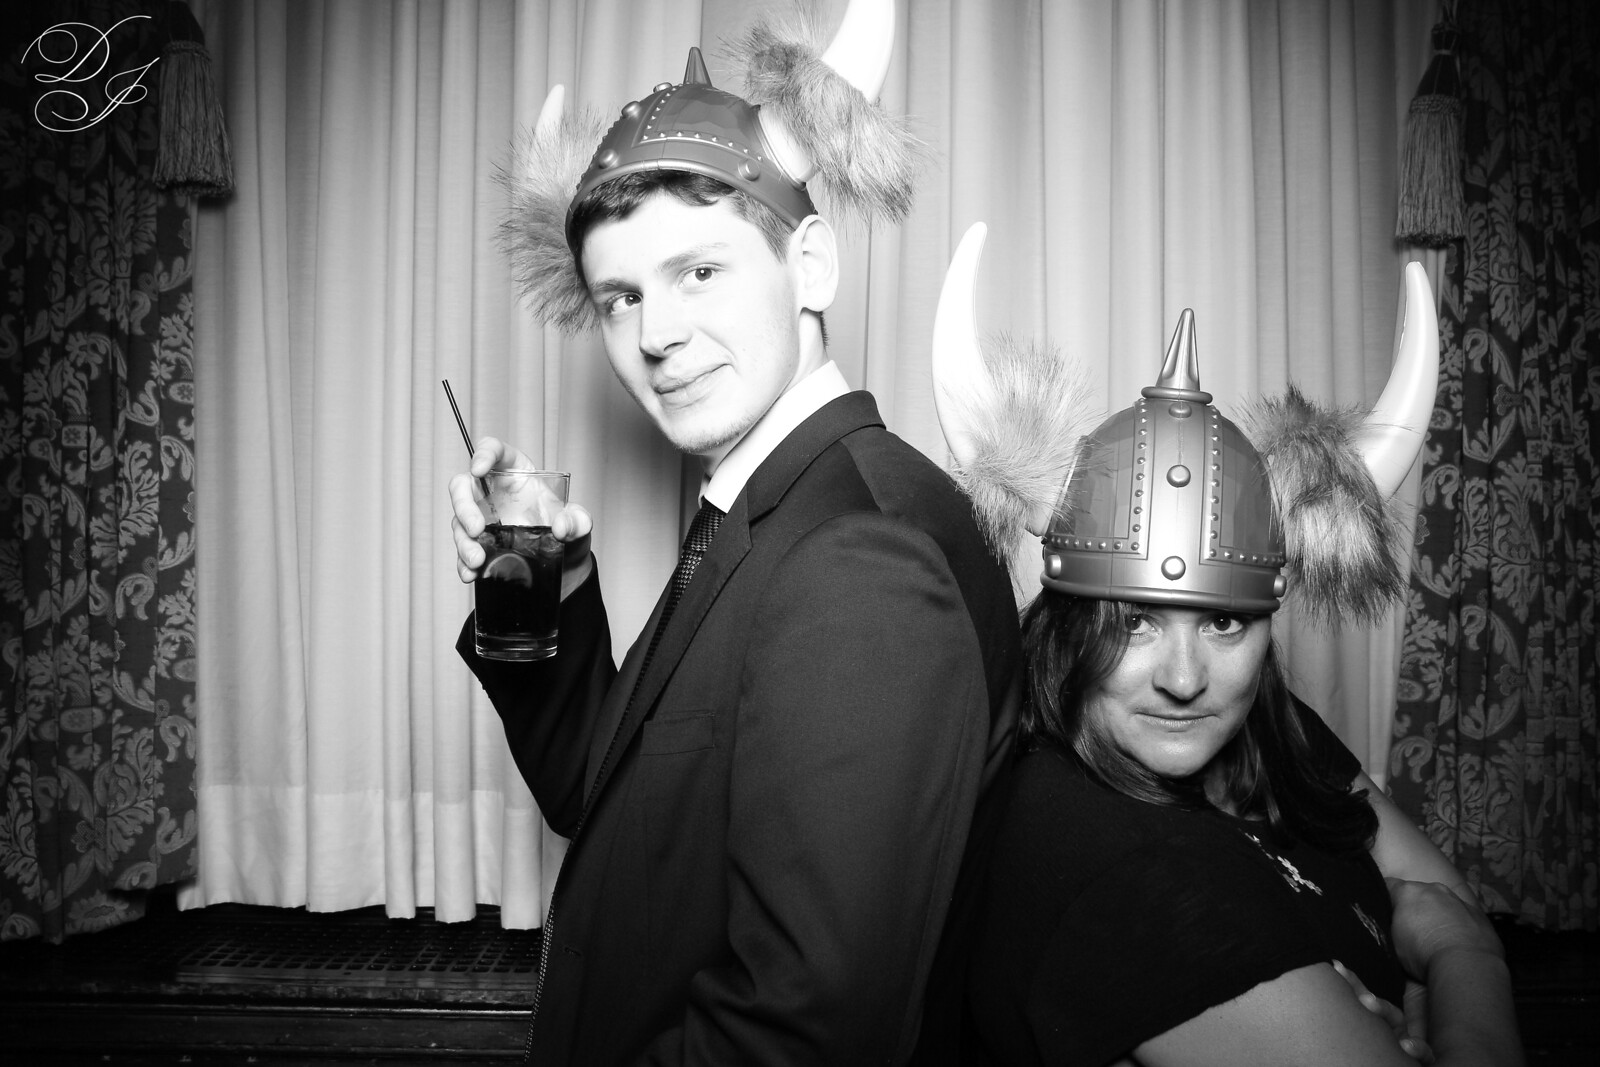 Chicago_Vintage_Wedding_Photobooth_Union_League_Club_29.jpg